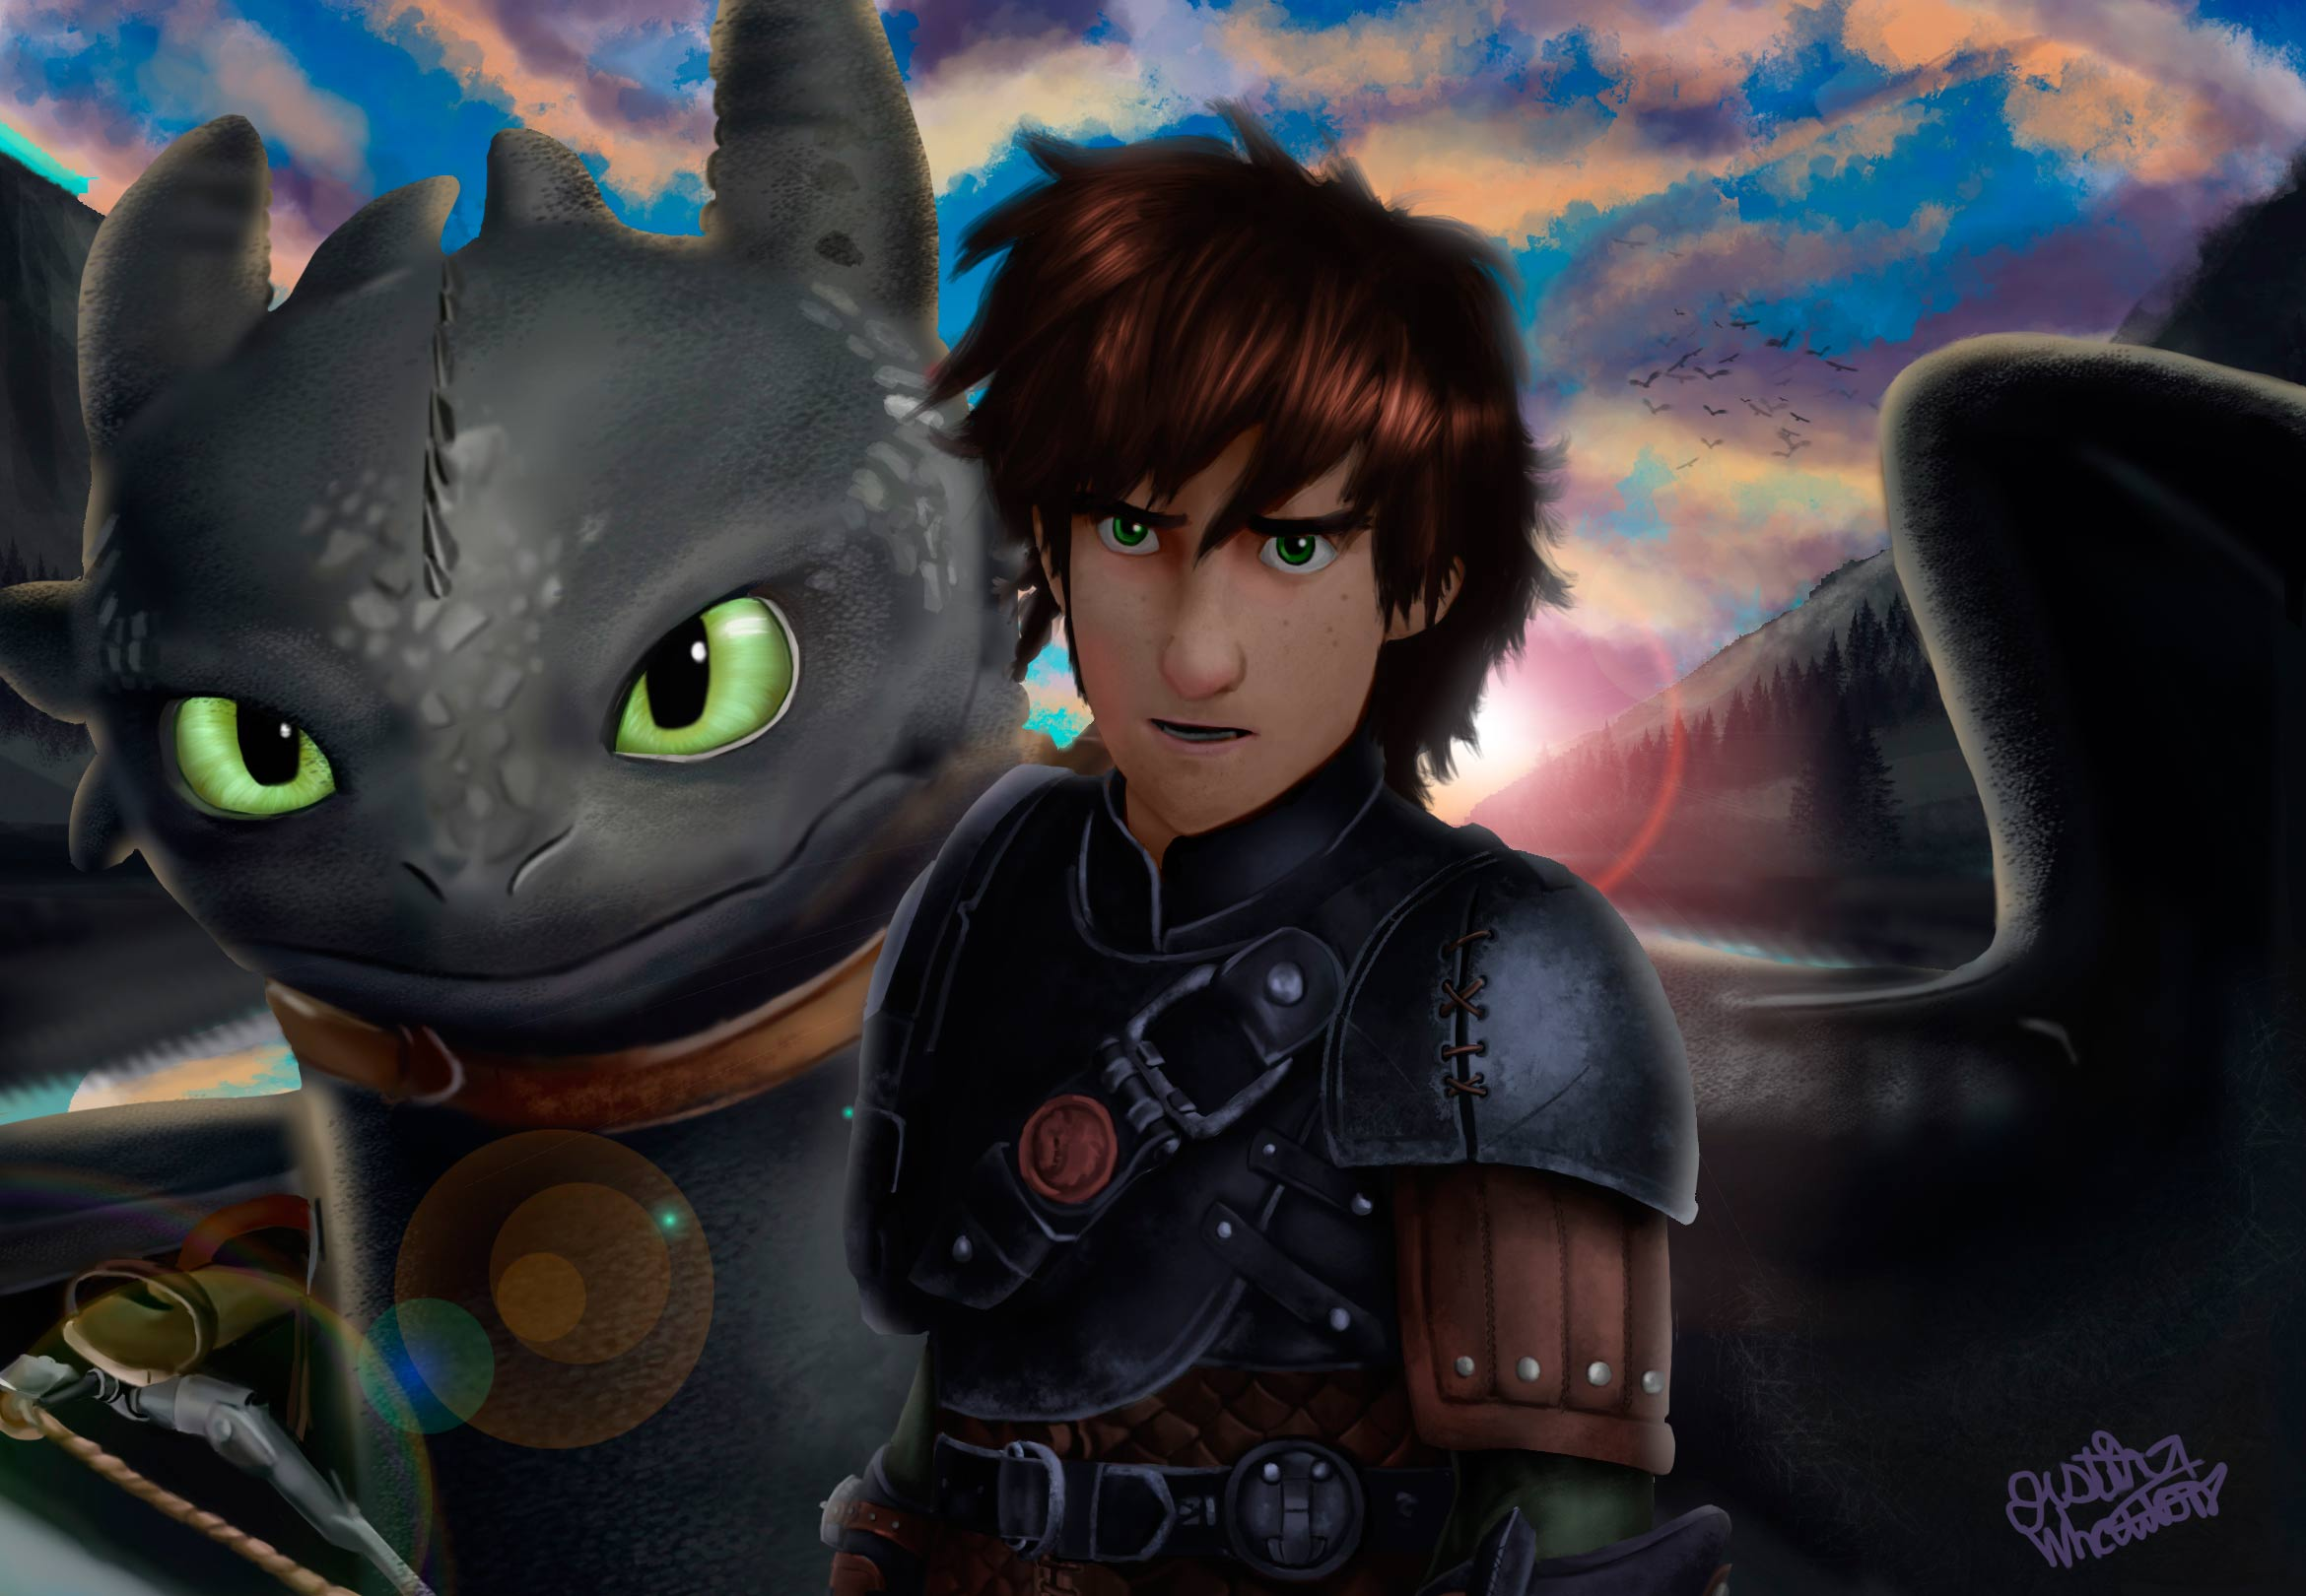 Fan art friday how to train your dragon by techgnotic on deviantart ccuart Choice Image